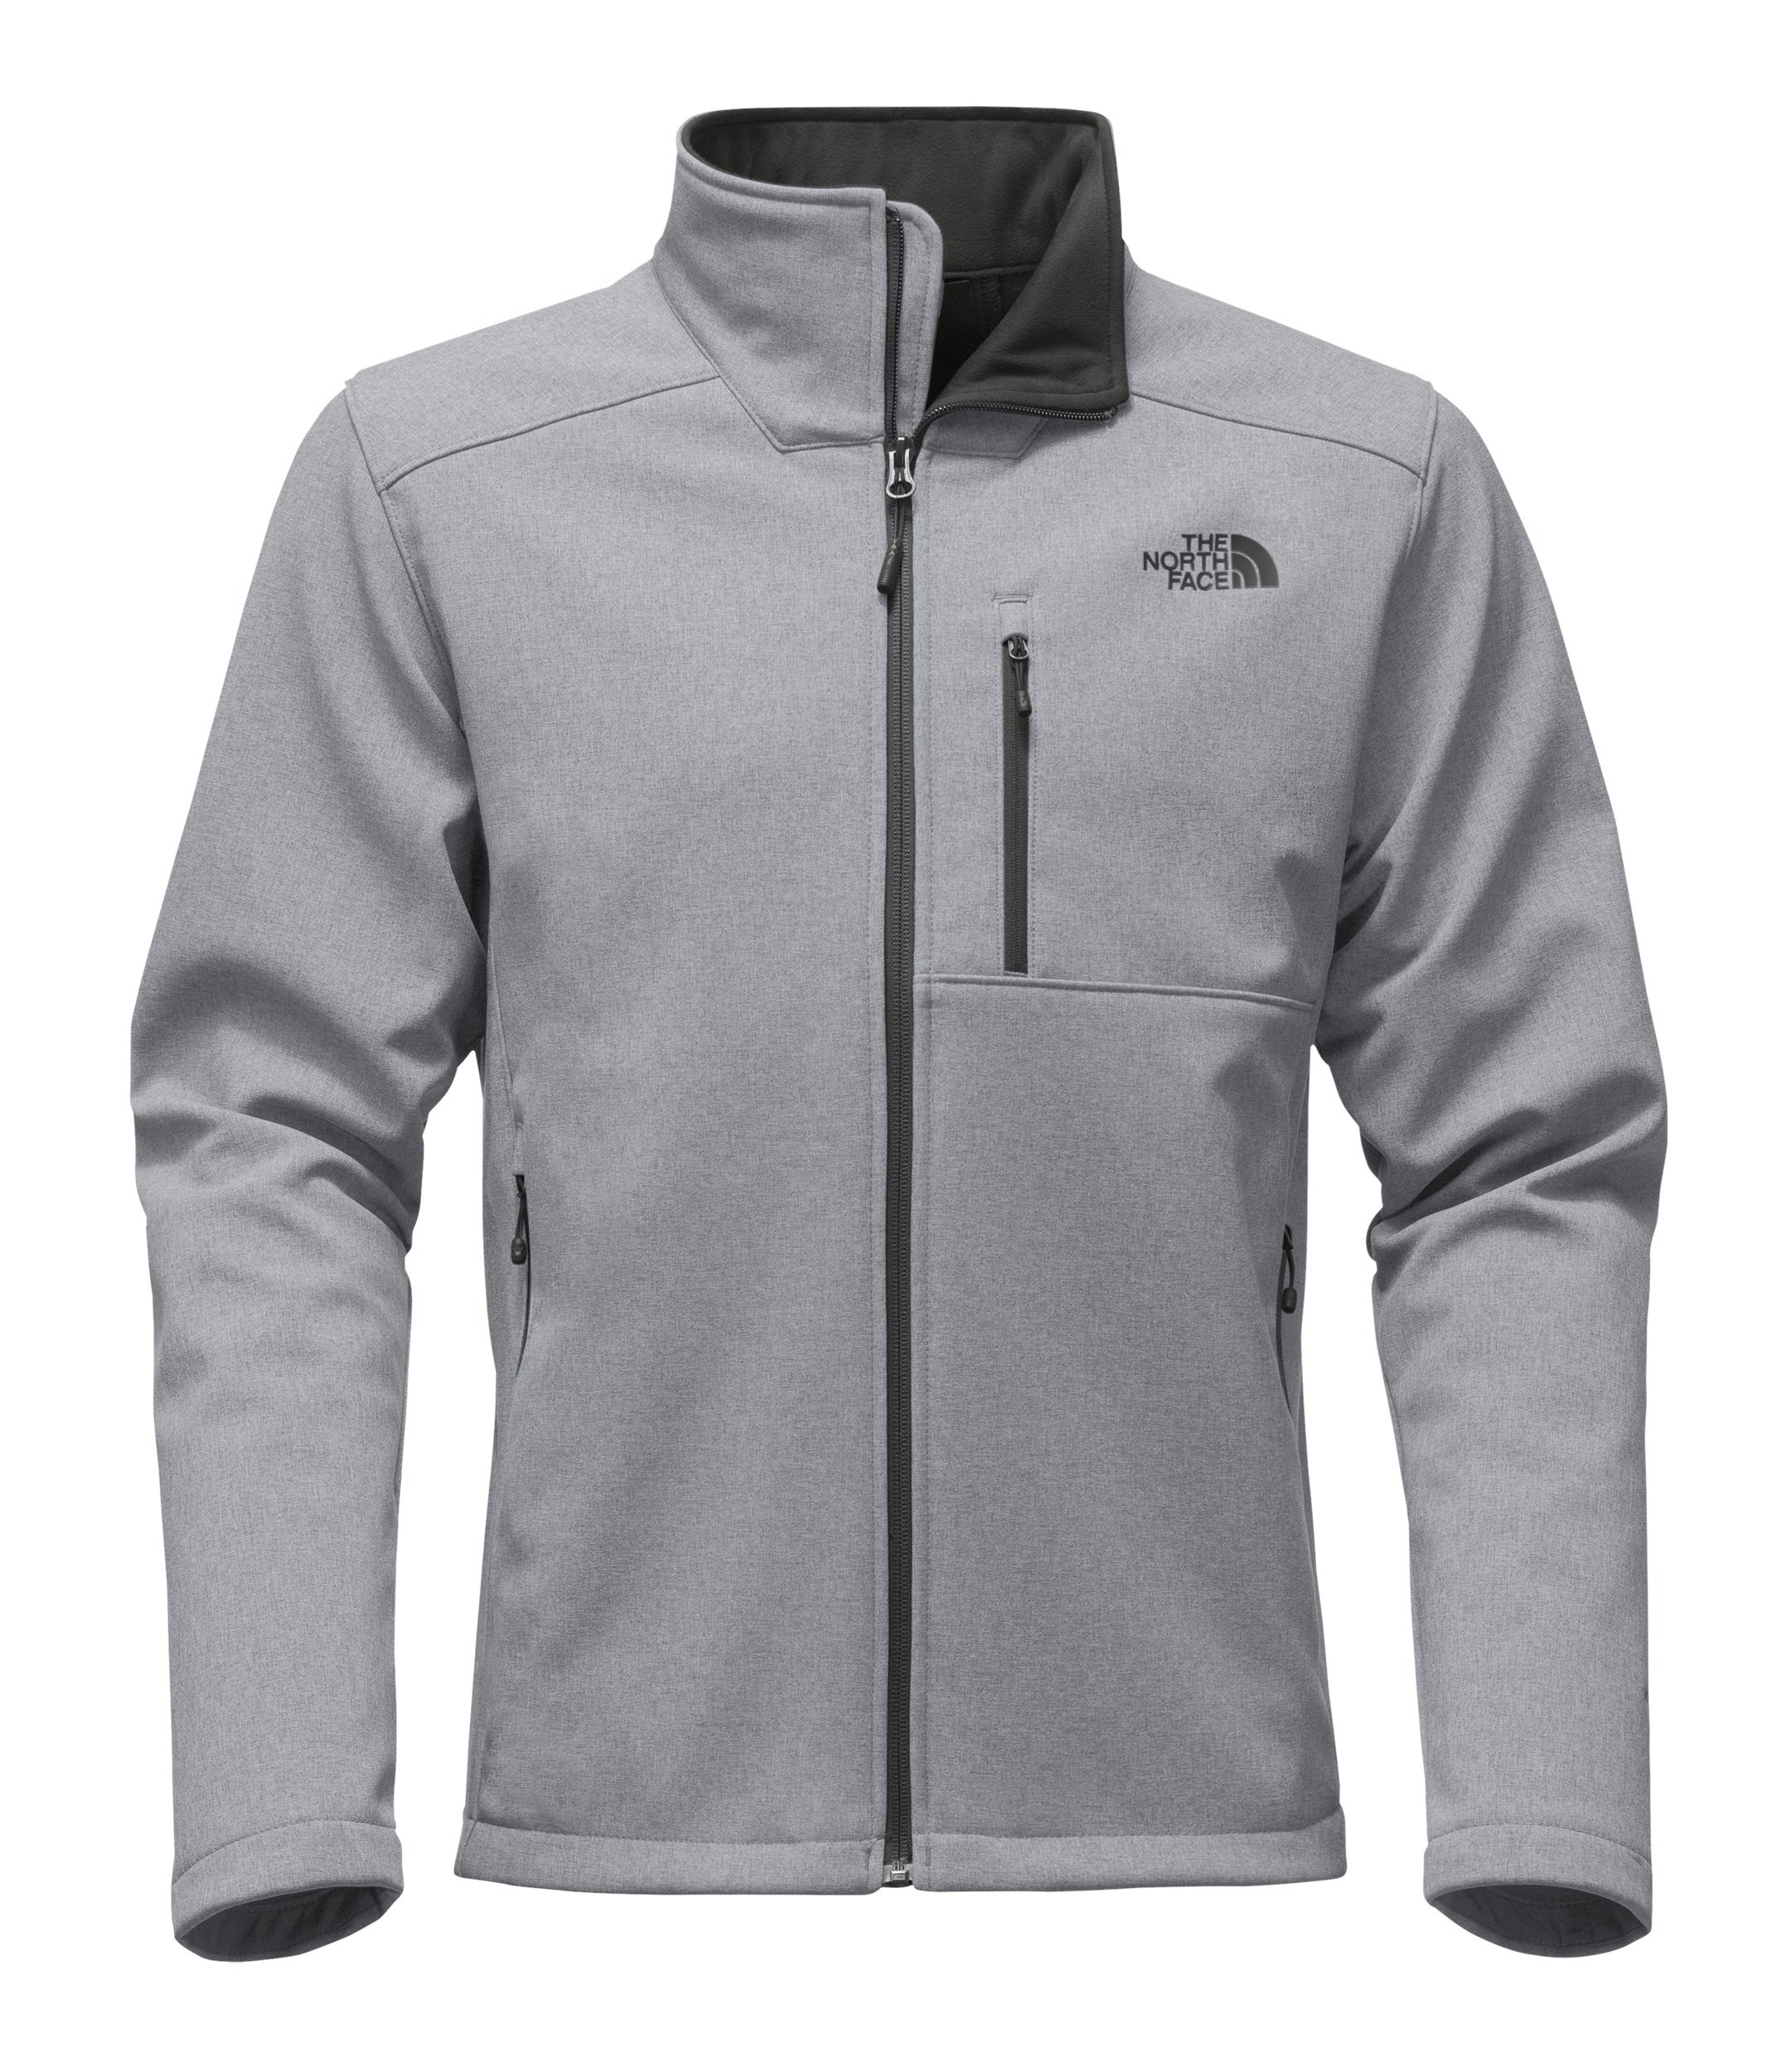 02ff0594d The North Face Men's Apex Bionic 2 Jacket - TNF Mid Grey Heather & TNF Mid  Grey Heather - L